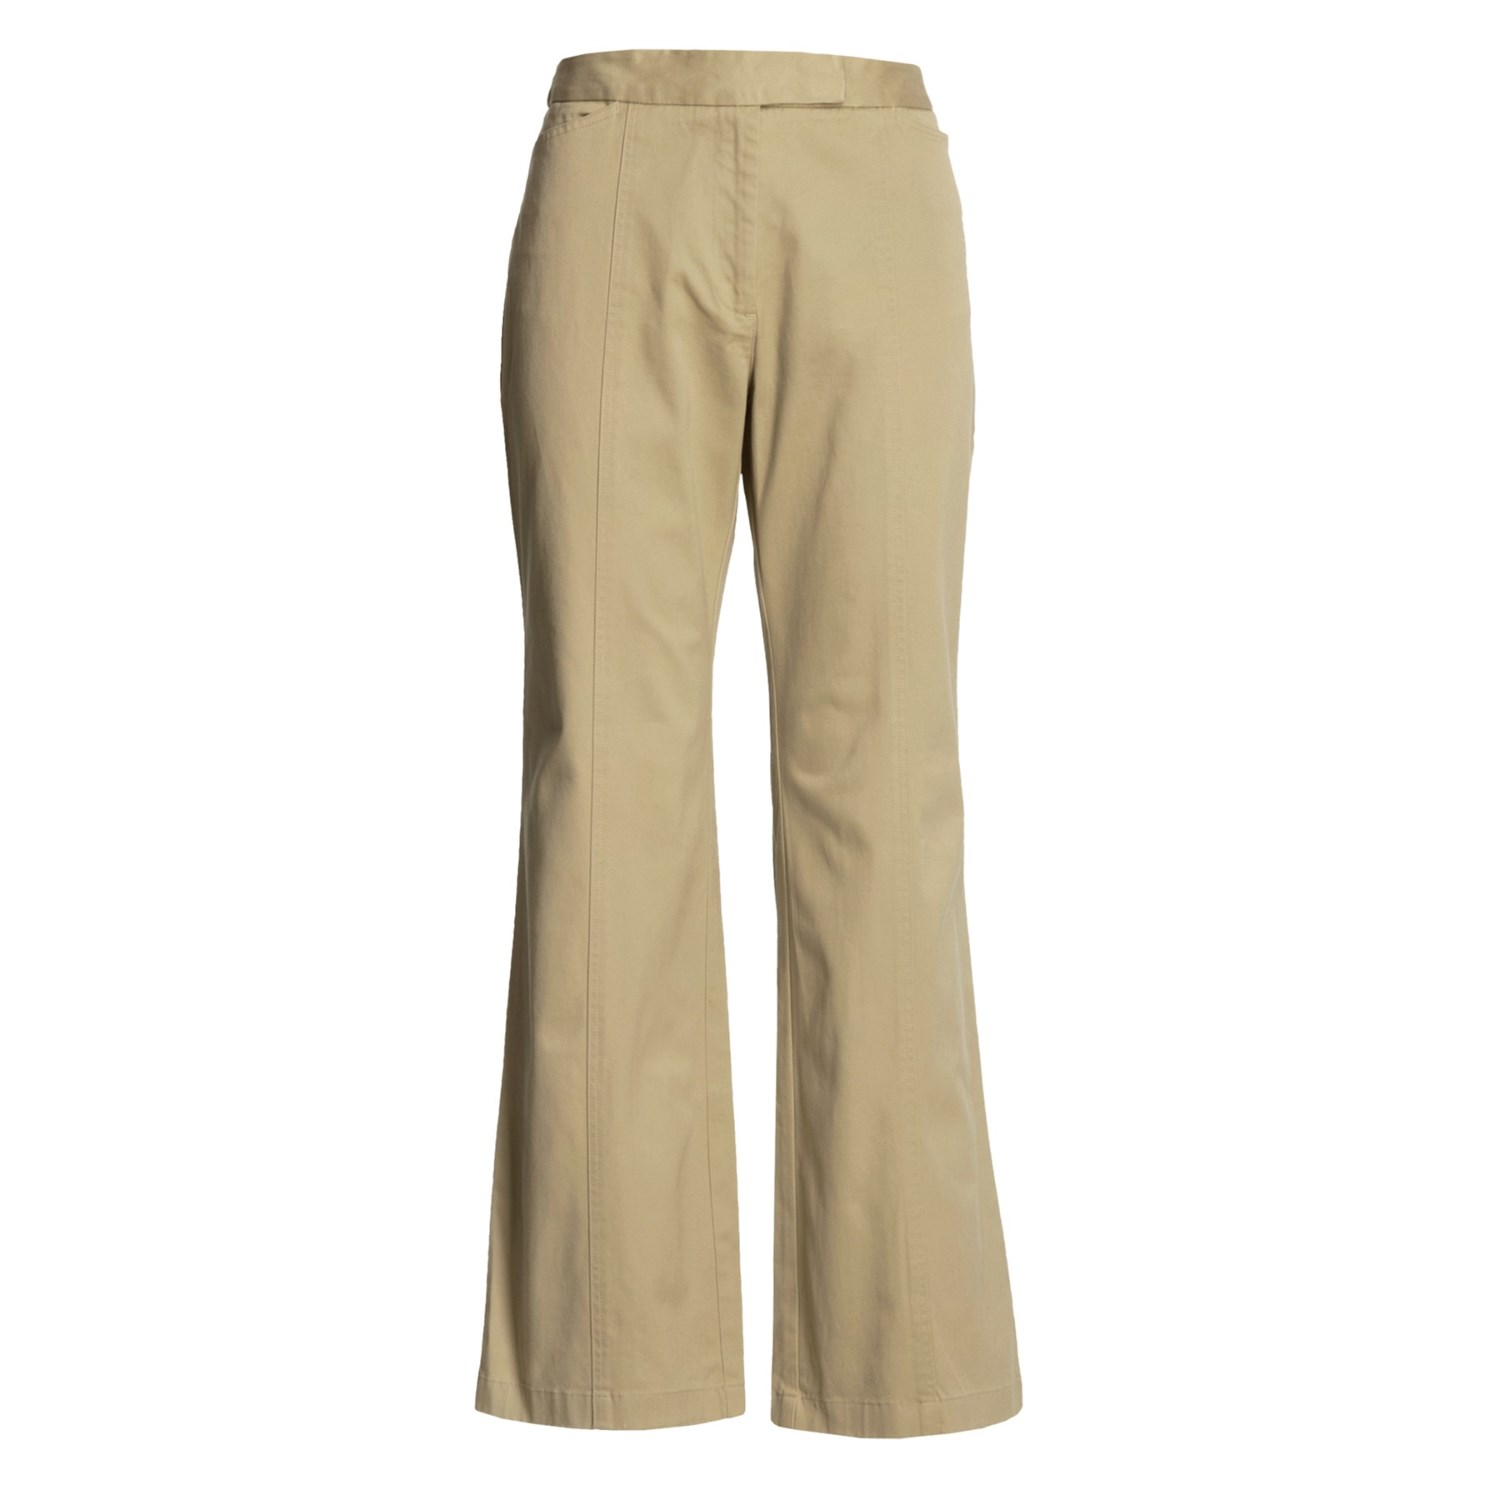 women's cotton pants from Gap are a fashion favorite for a stylish look. Find women's cotton pants in the latest designs and the hottest colors of the season.